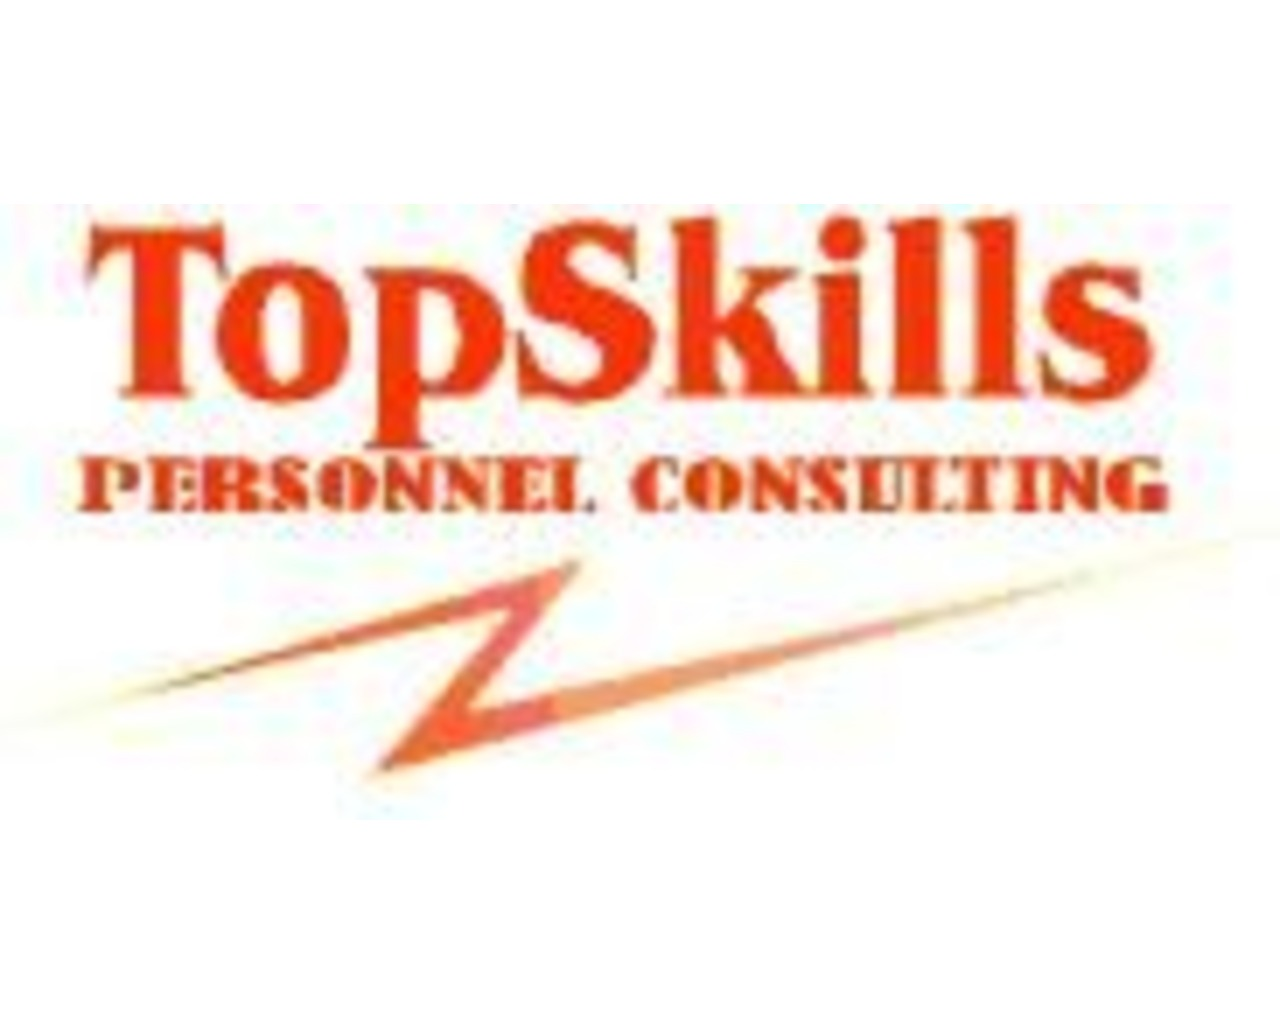 TopSkills Personnel Consulting